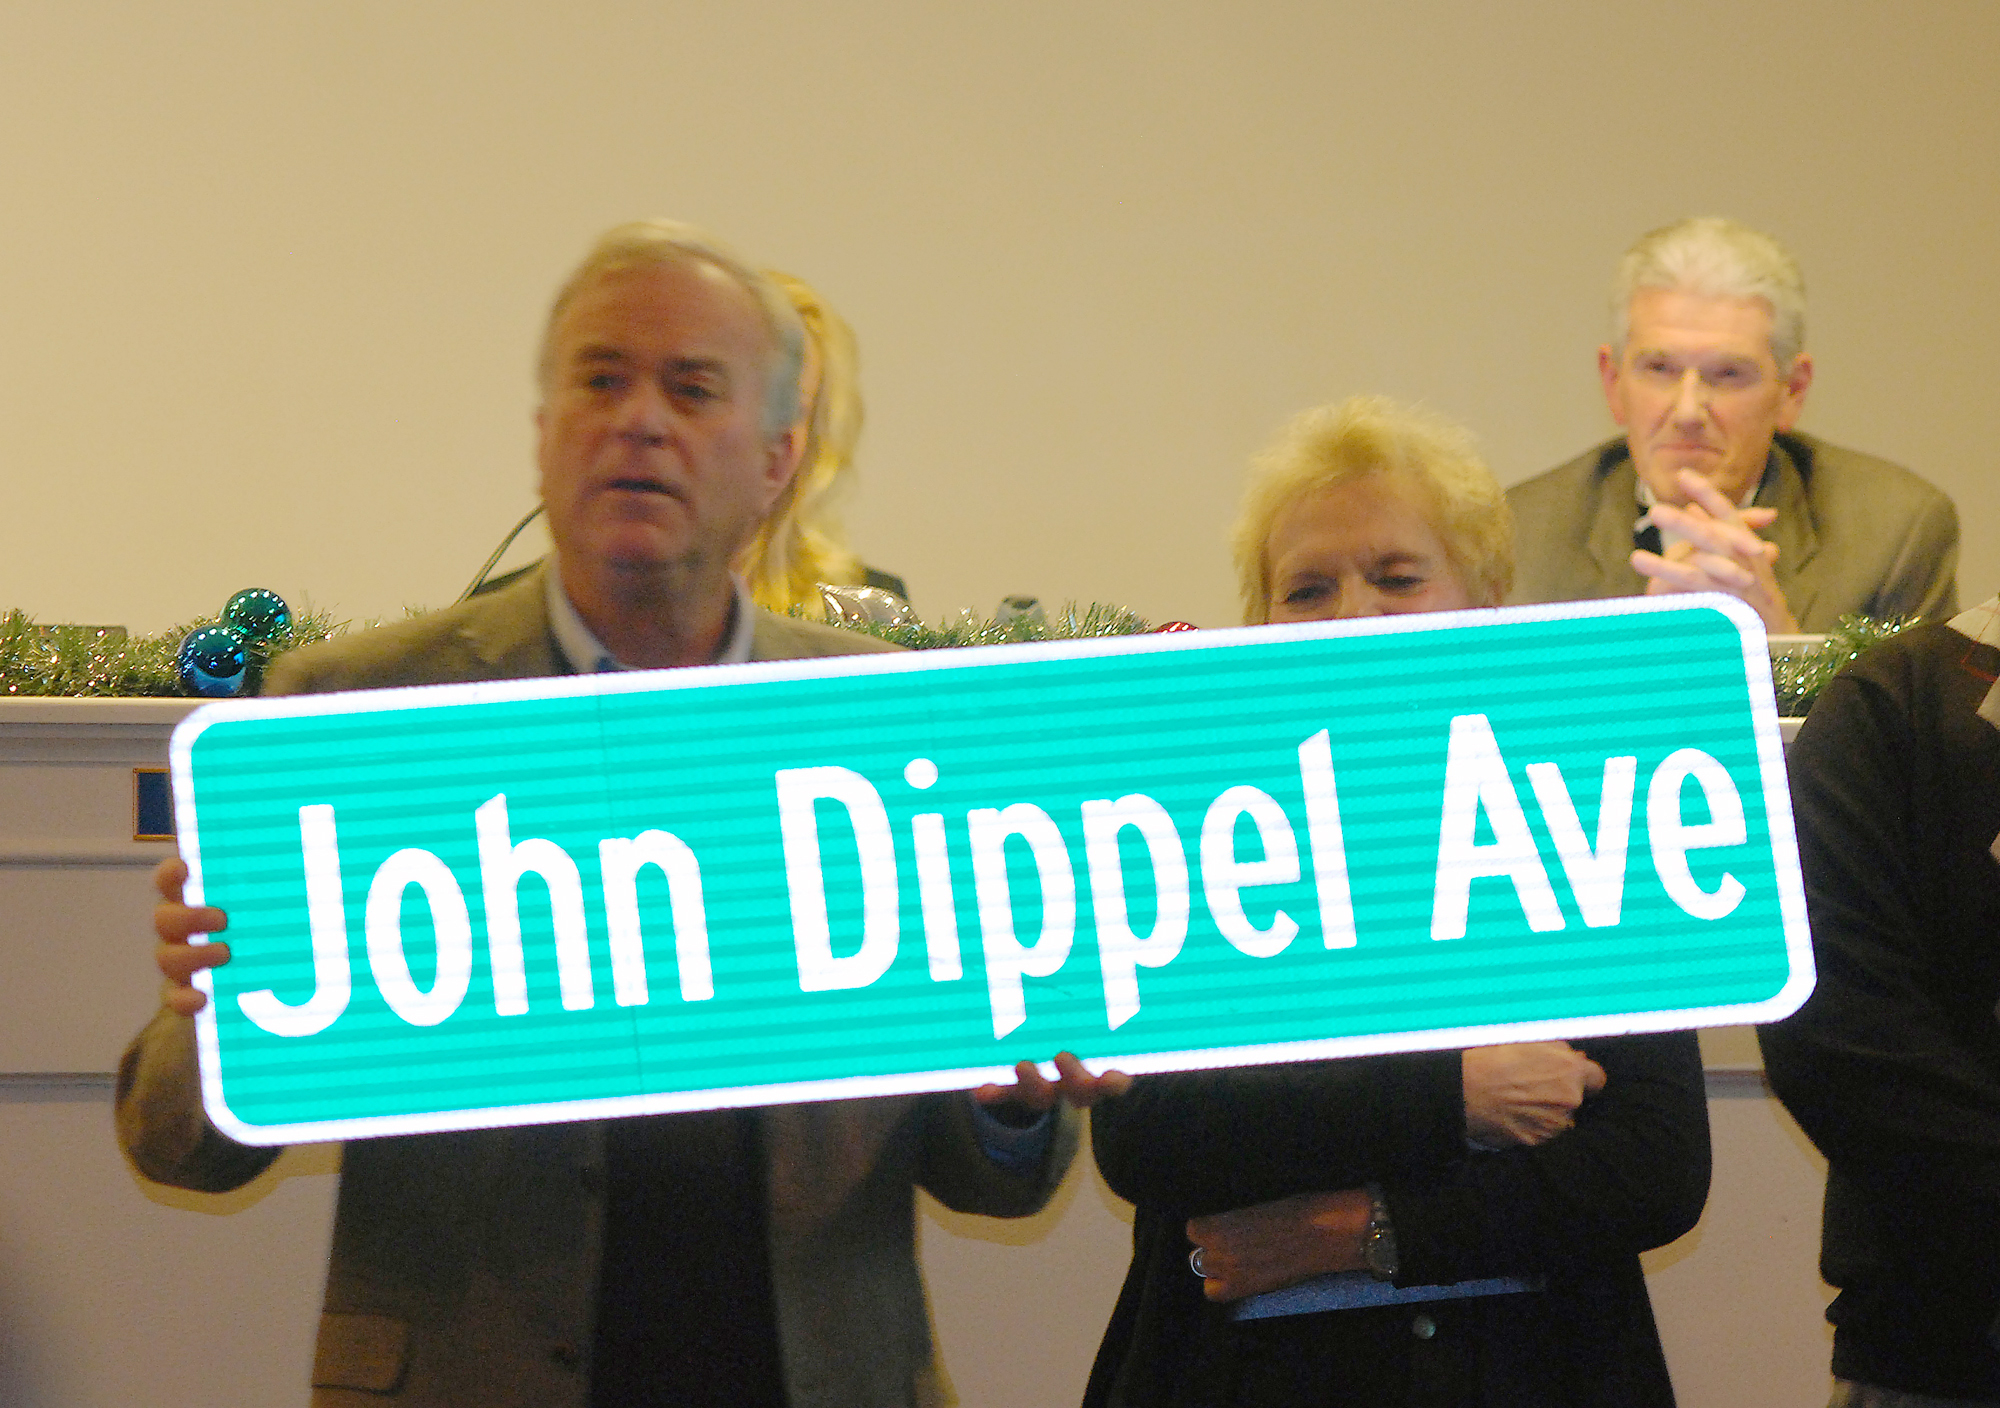 Mayor Andy Cook unveils the John Dippel Avenue sign that will be designated to a roadway in Westfield when an appropriate place has been determined. Dippel passed away on Sept. 21 while serving as a city council member.